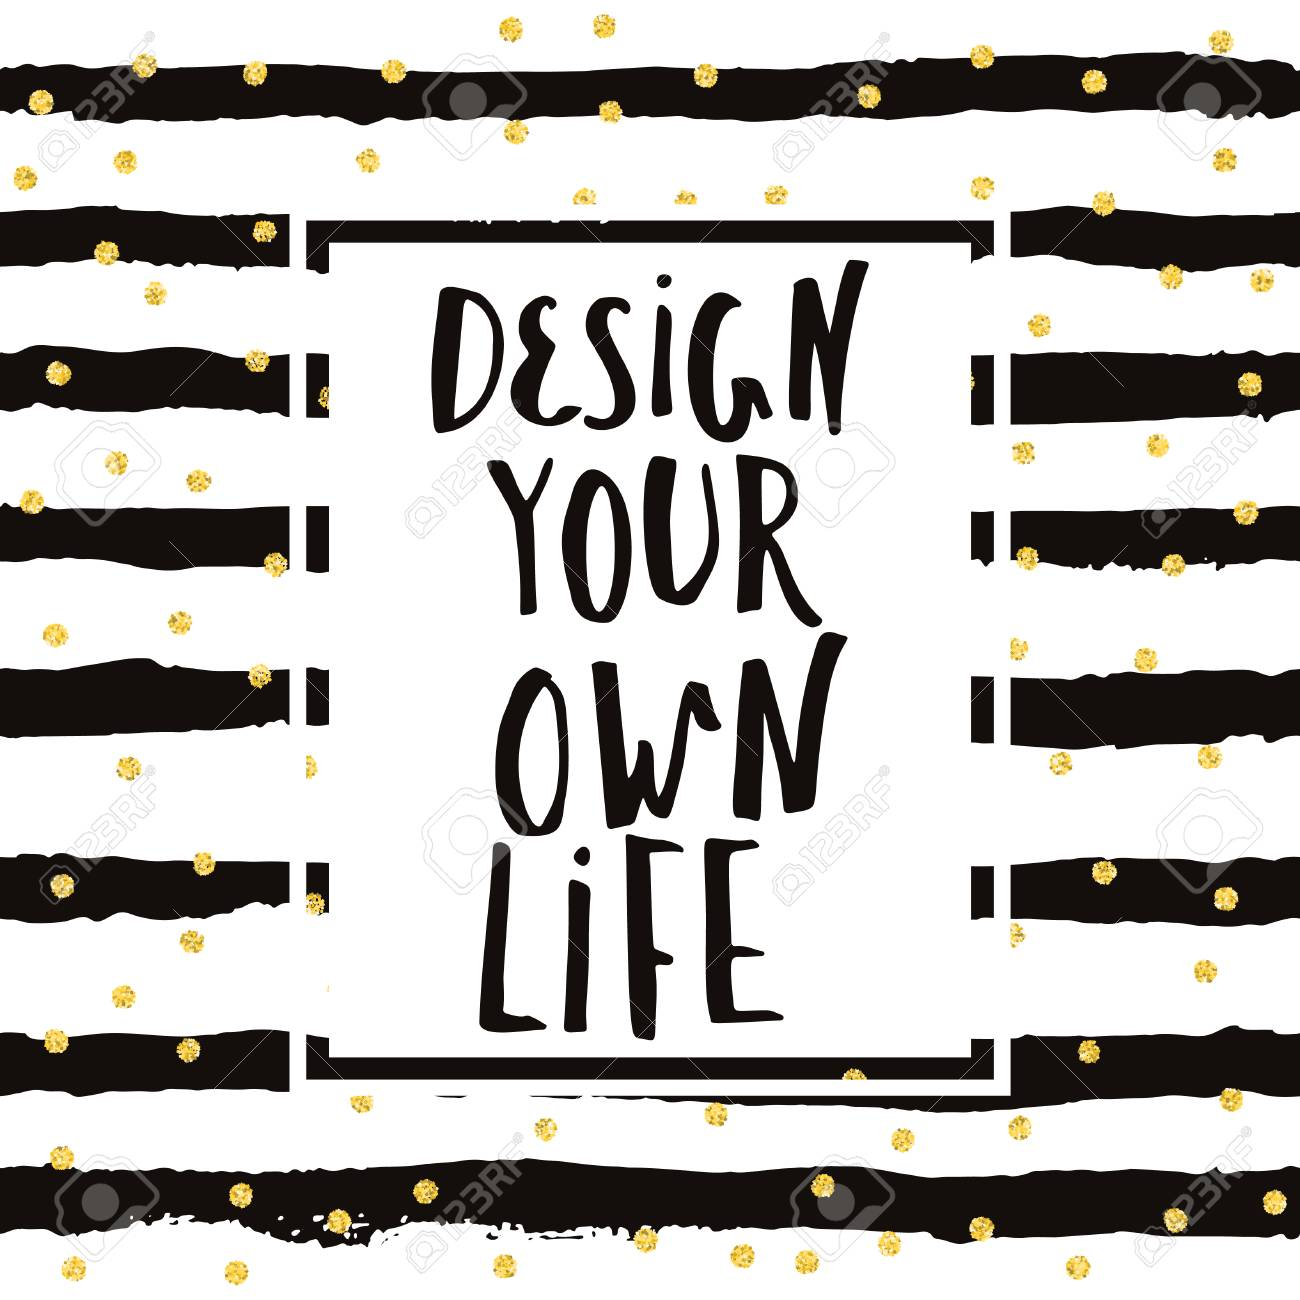 Design Your Own Life Inspirational Quote Fo Home Decor T Shirt